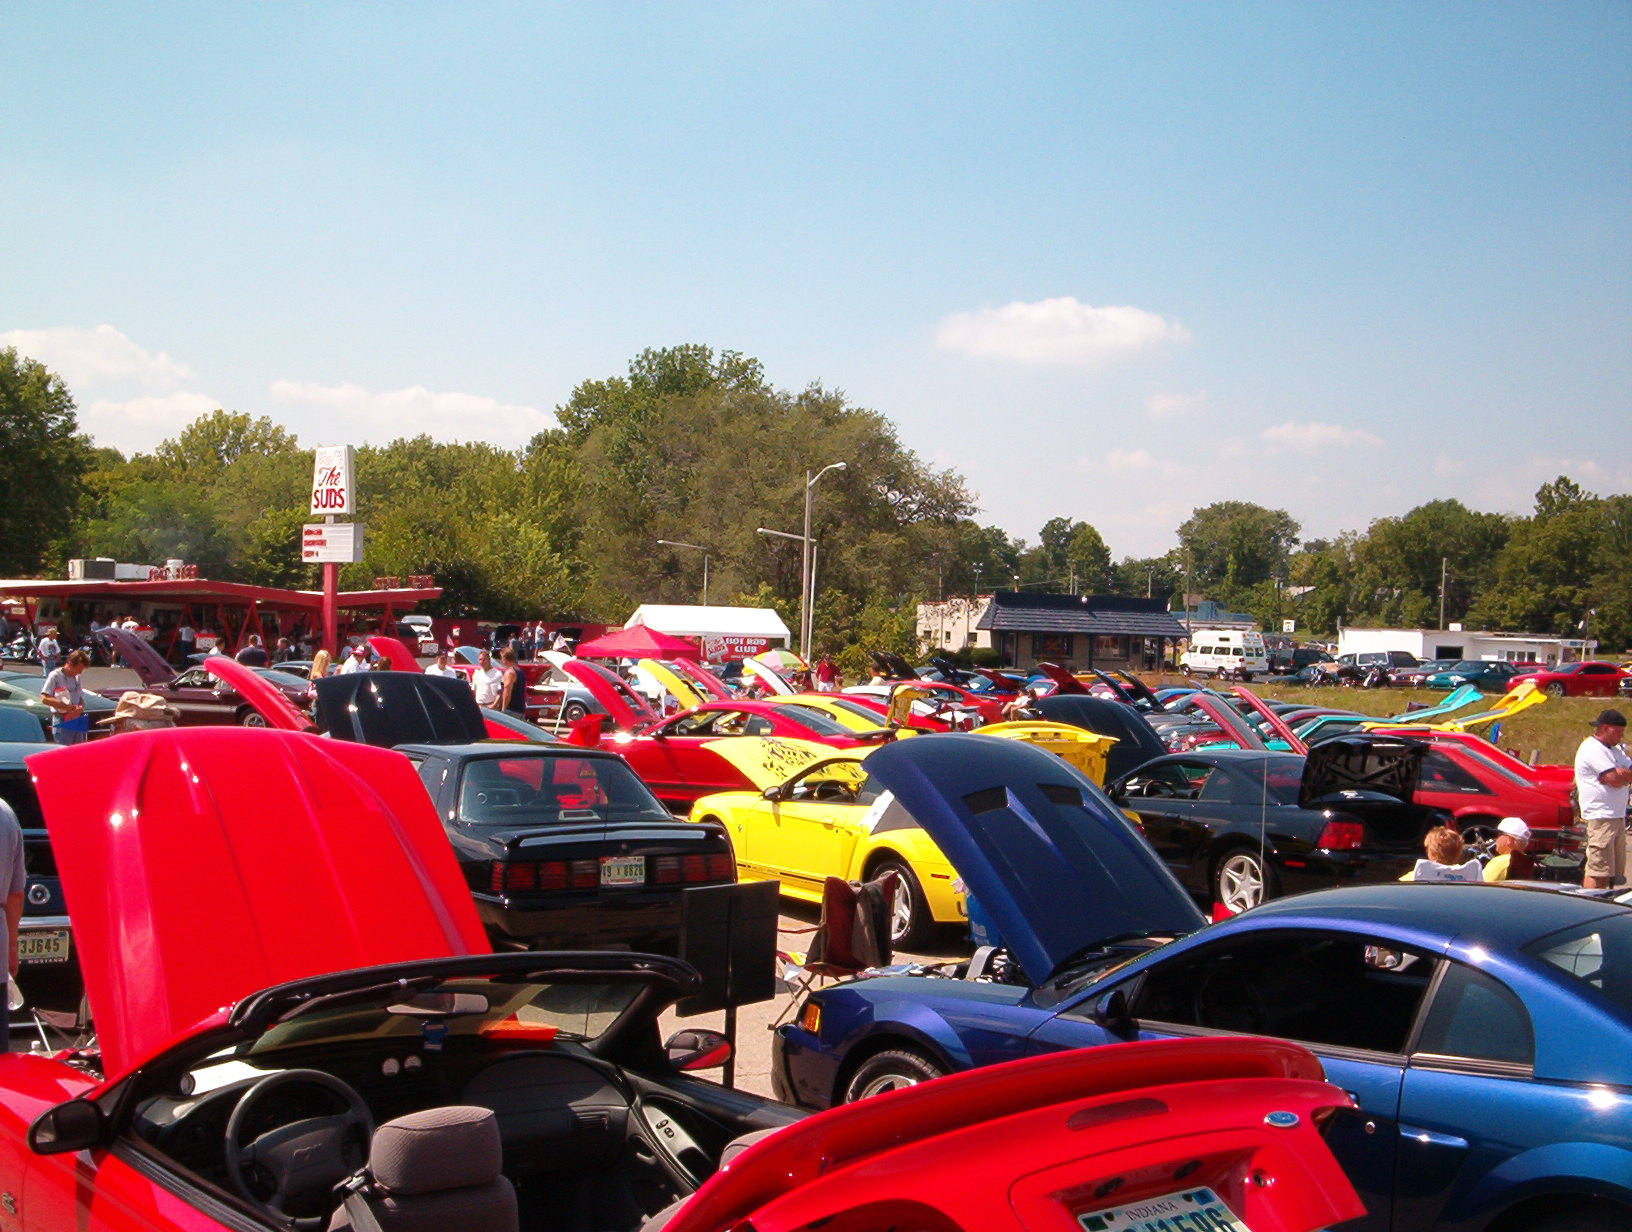 Click image for larger version  Name:8-21-04 car show 018.jpg Views:159 Size:421.5 KB ID:8515